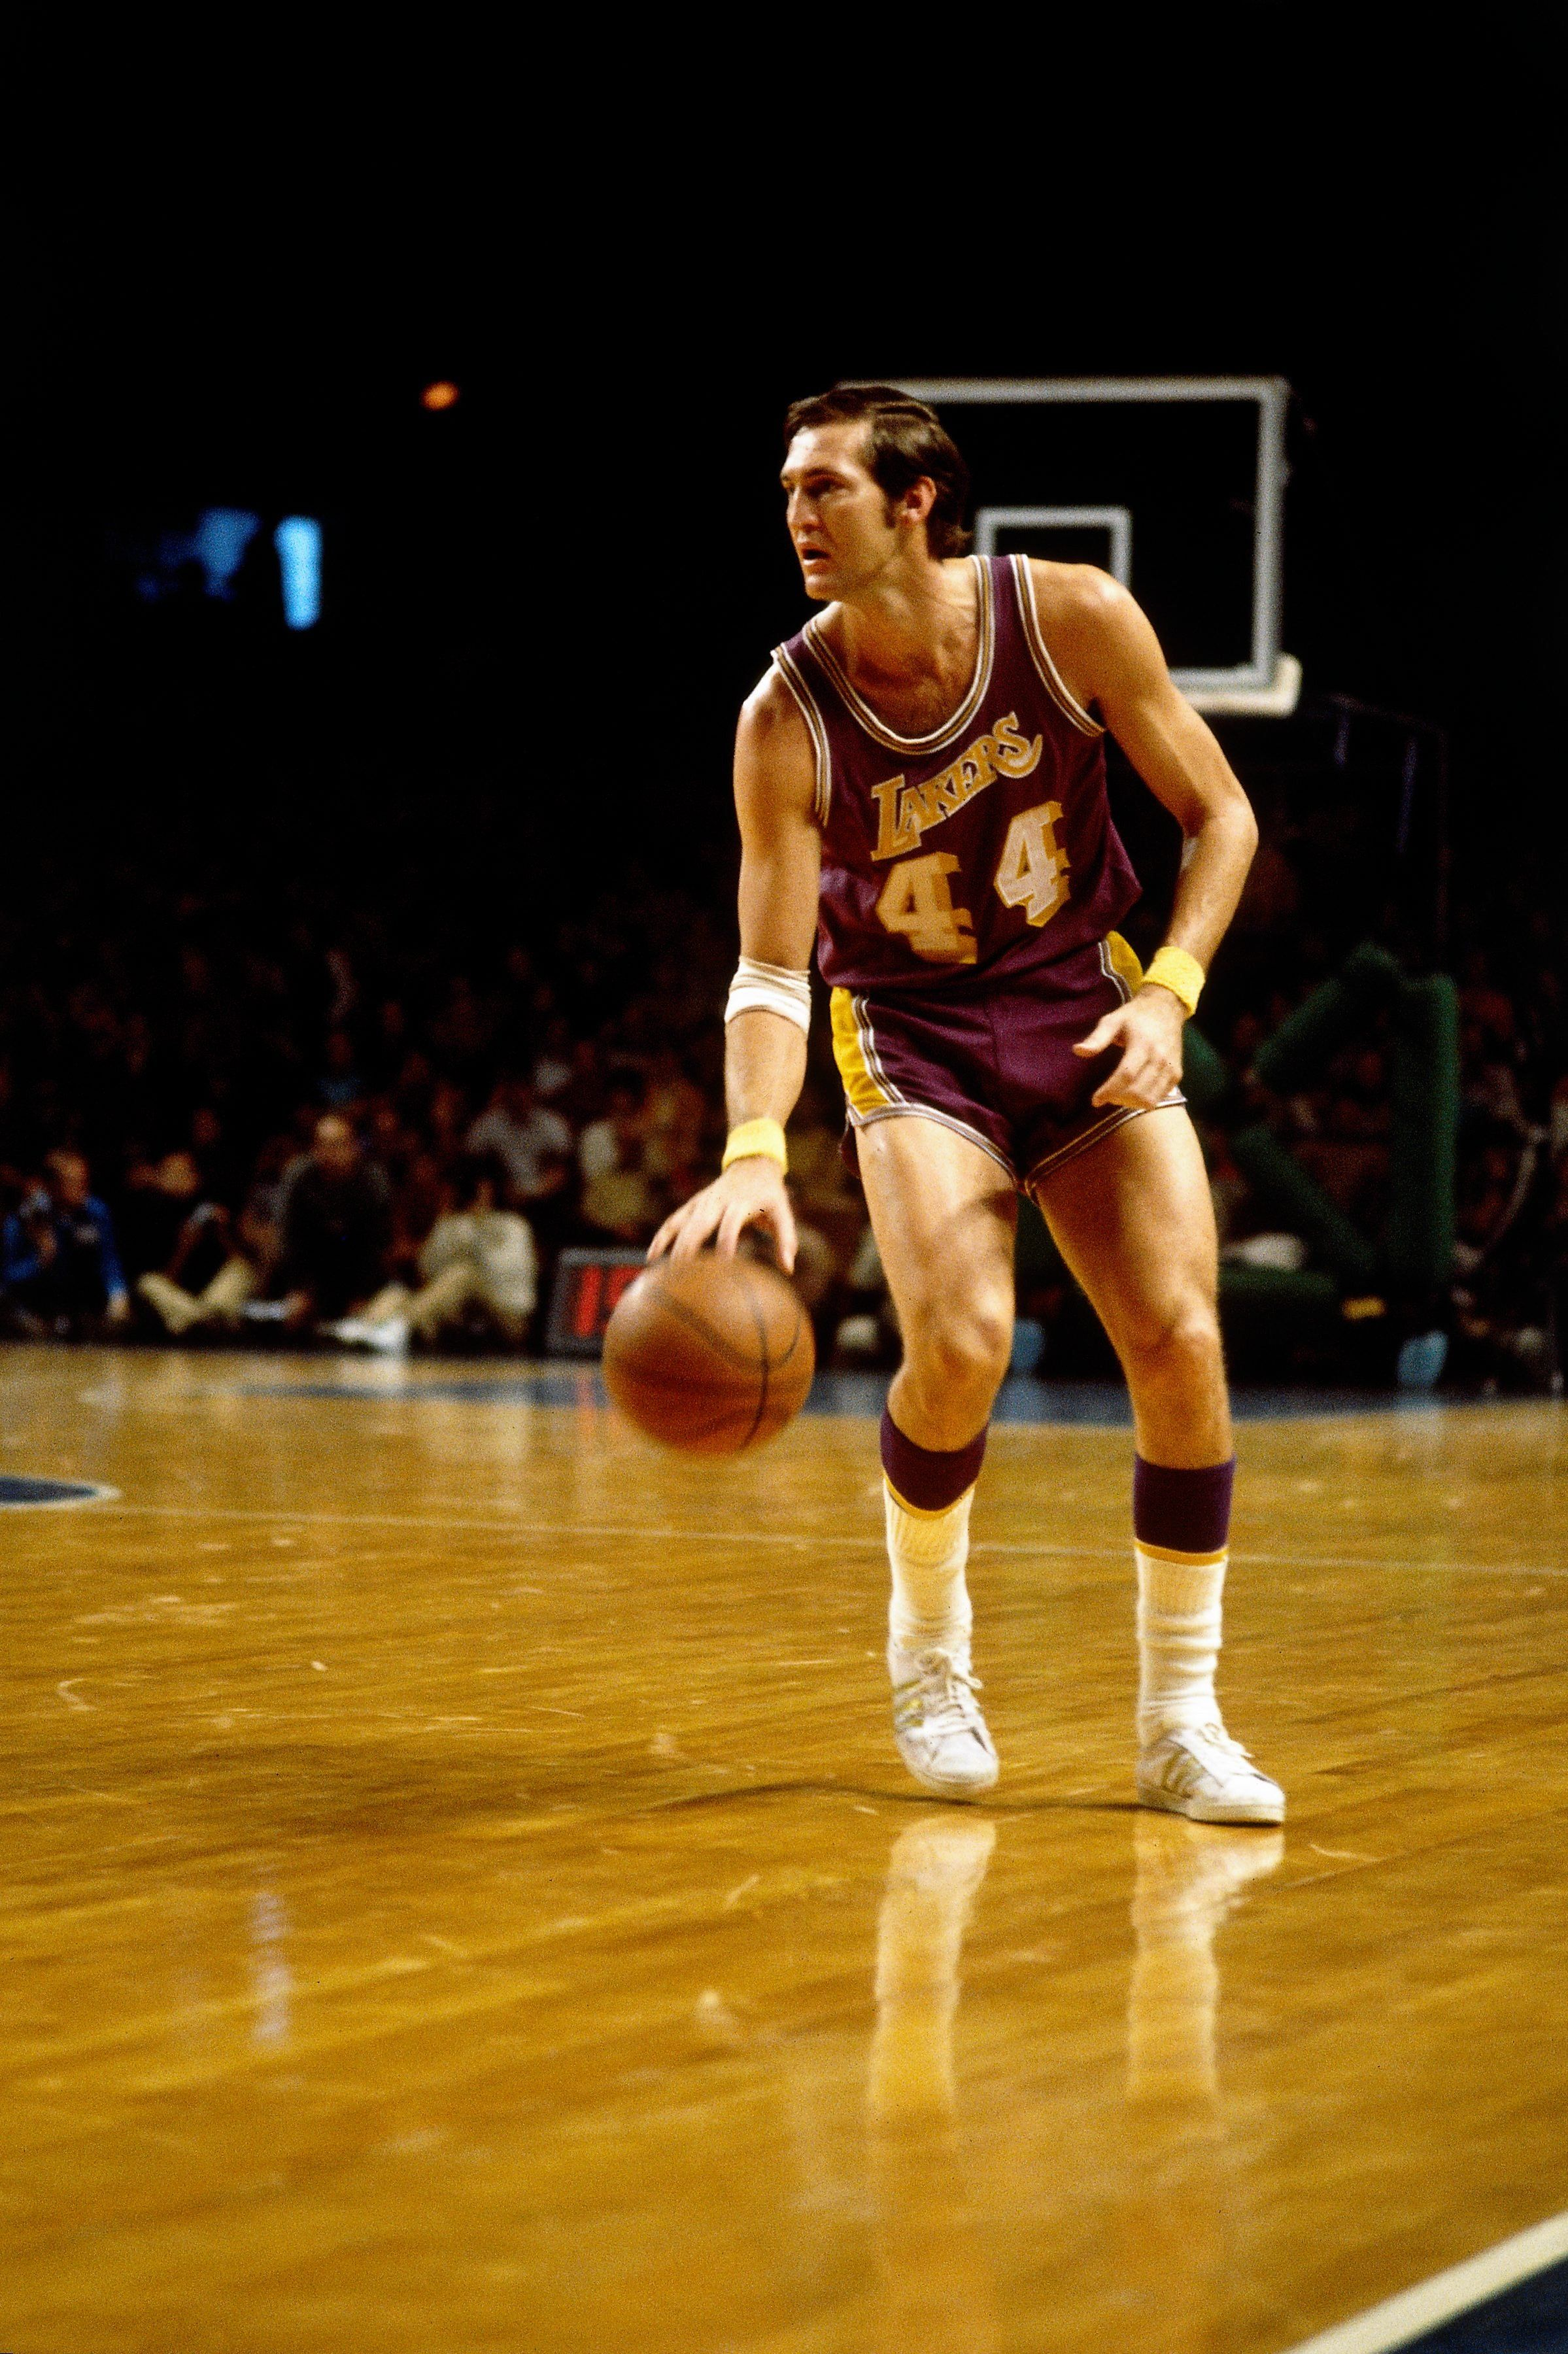 5 Best White Basketball Players You Should See Jerry West